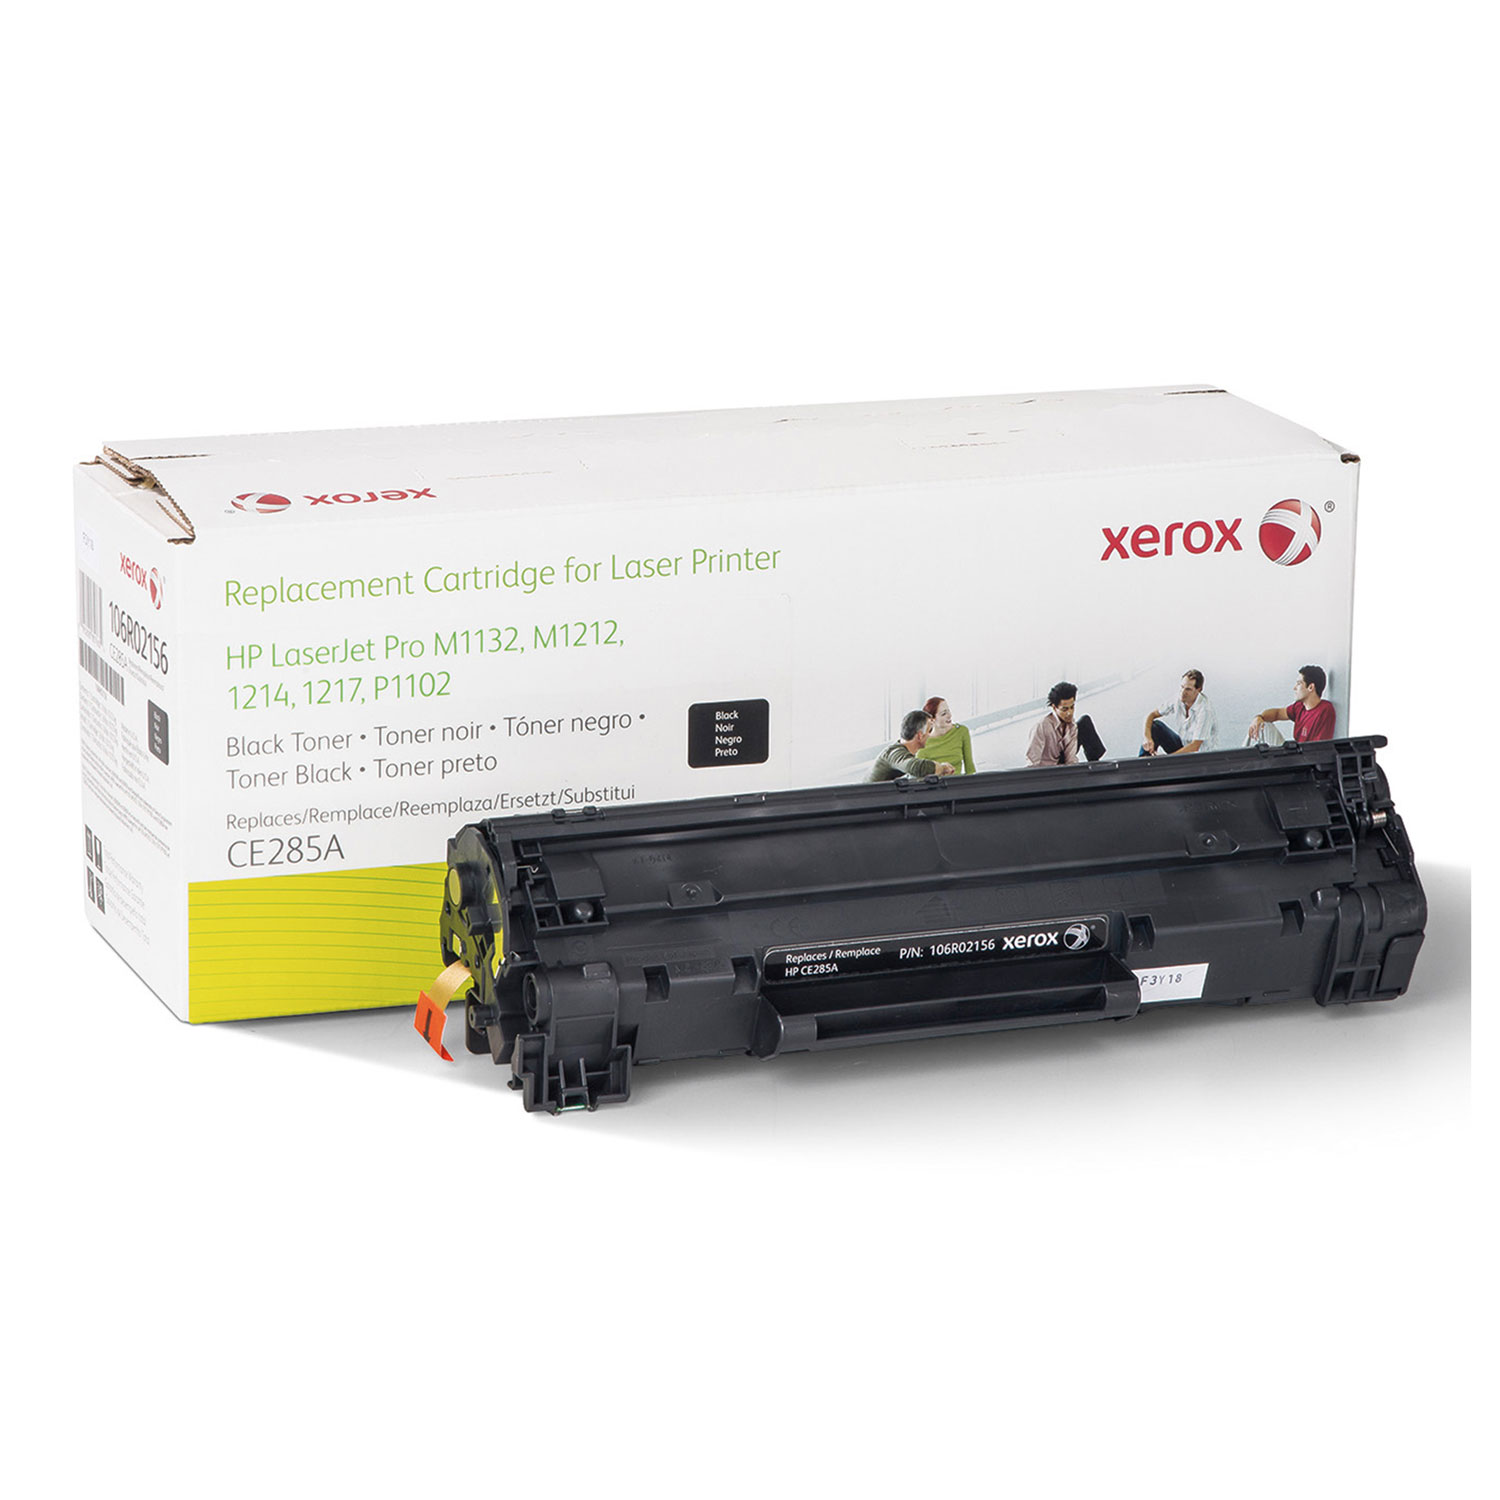 106r02156 Replacement Toner For Ce285a 85a By Xerox Xer106r02156 Compatible Cartridge Printer P1102 Laserjet Thumbnail 1